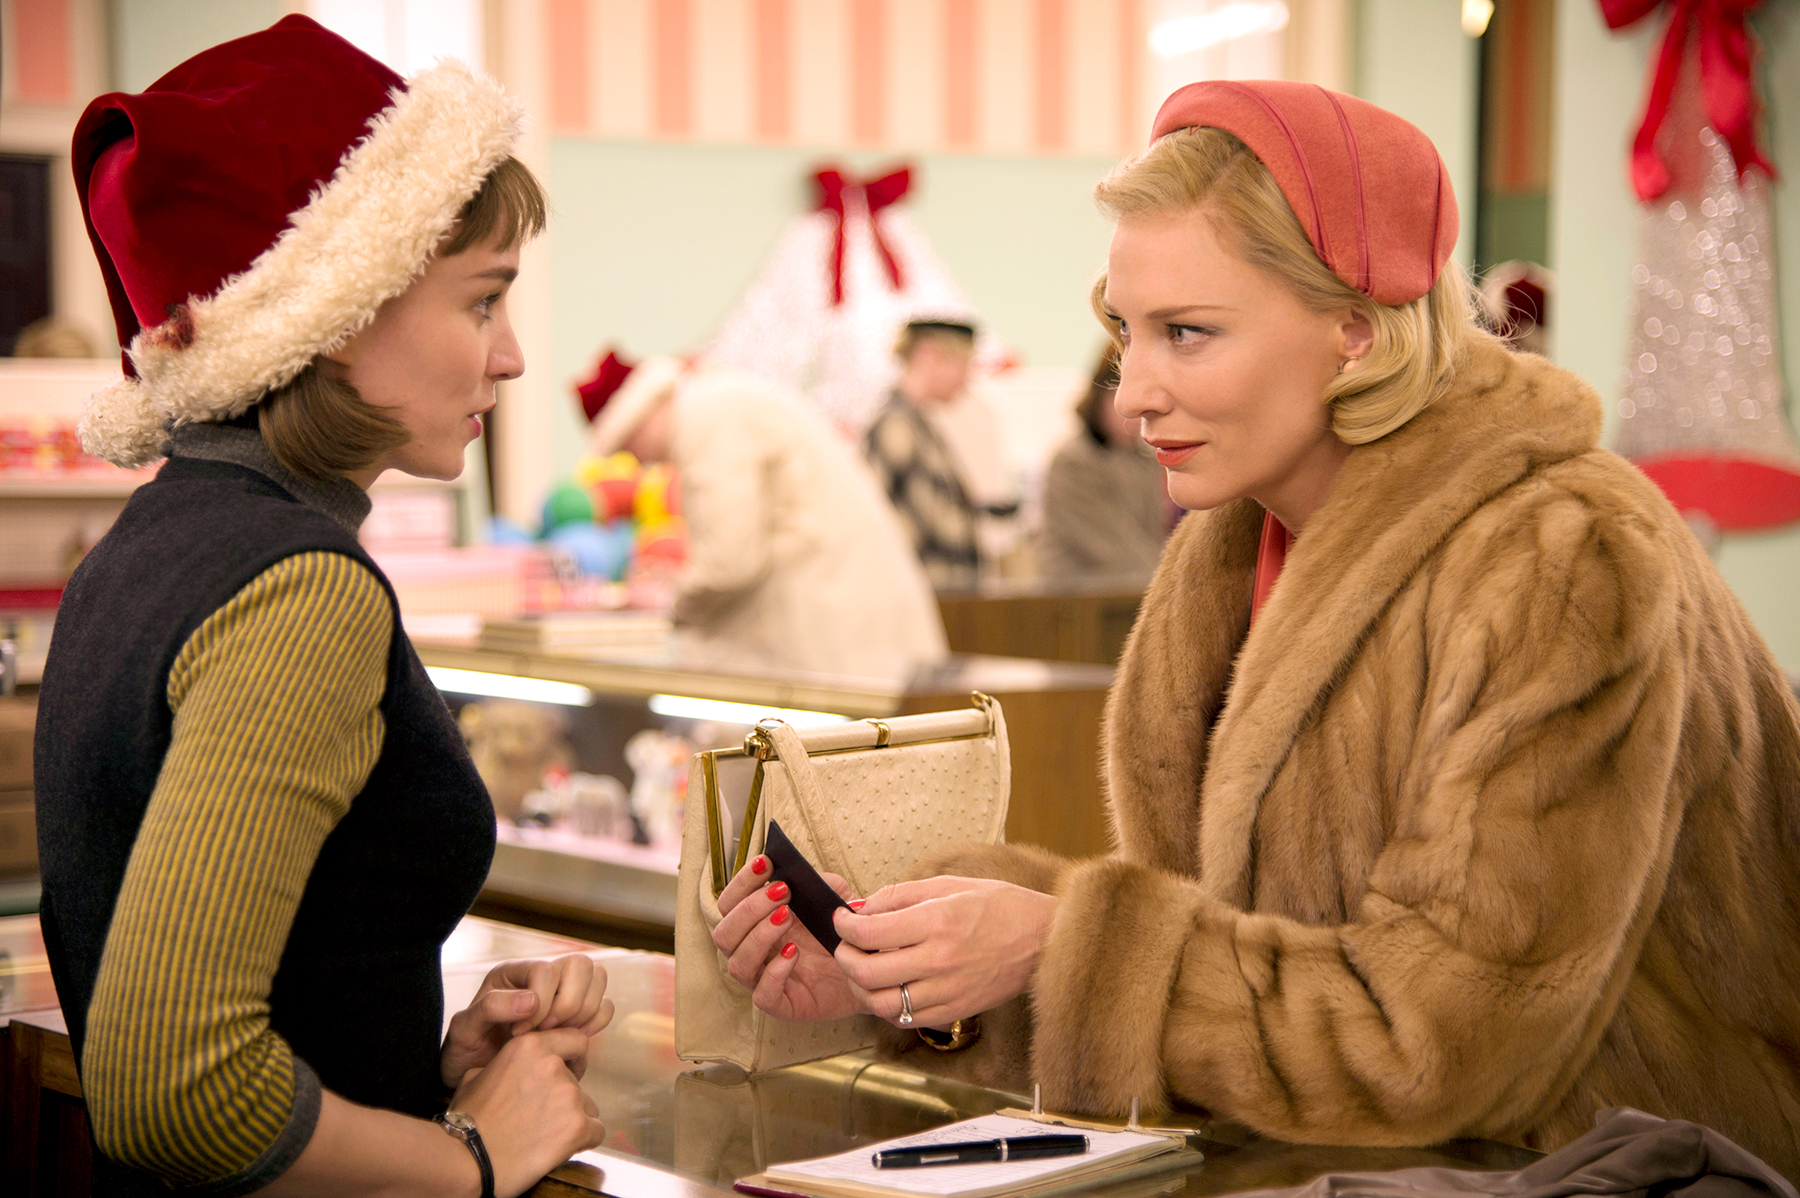 Rooney Mara and Cate Blanchett star in Carol.